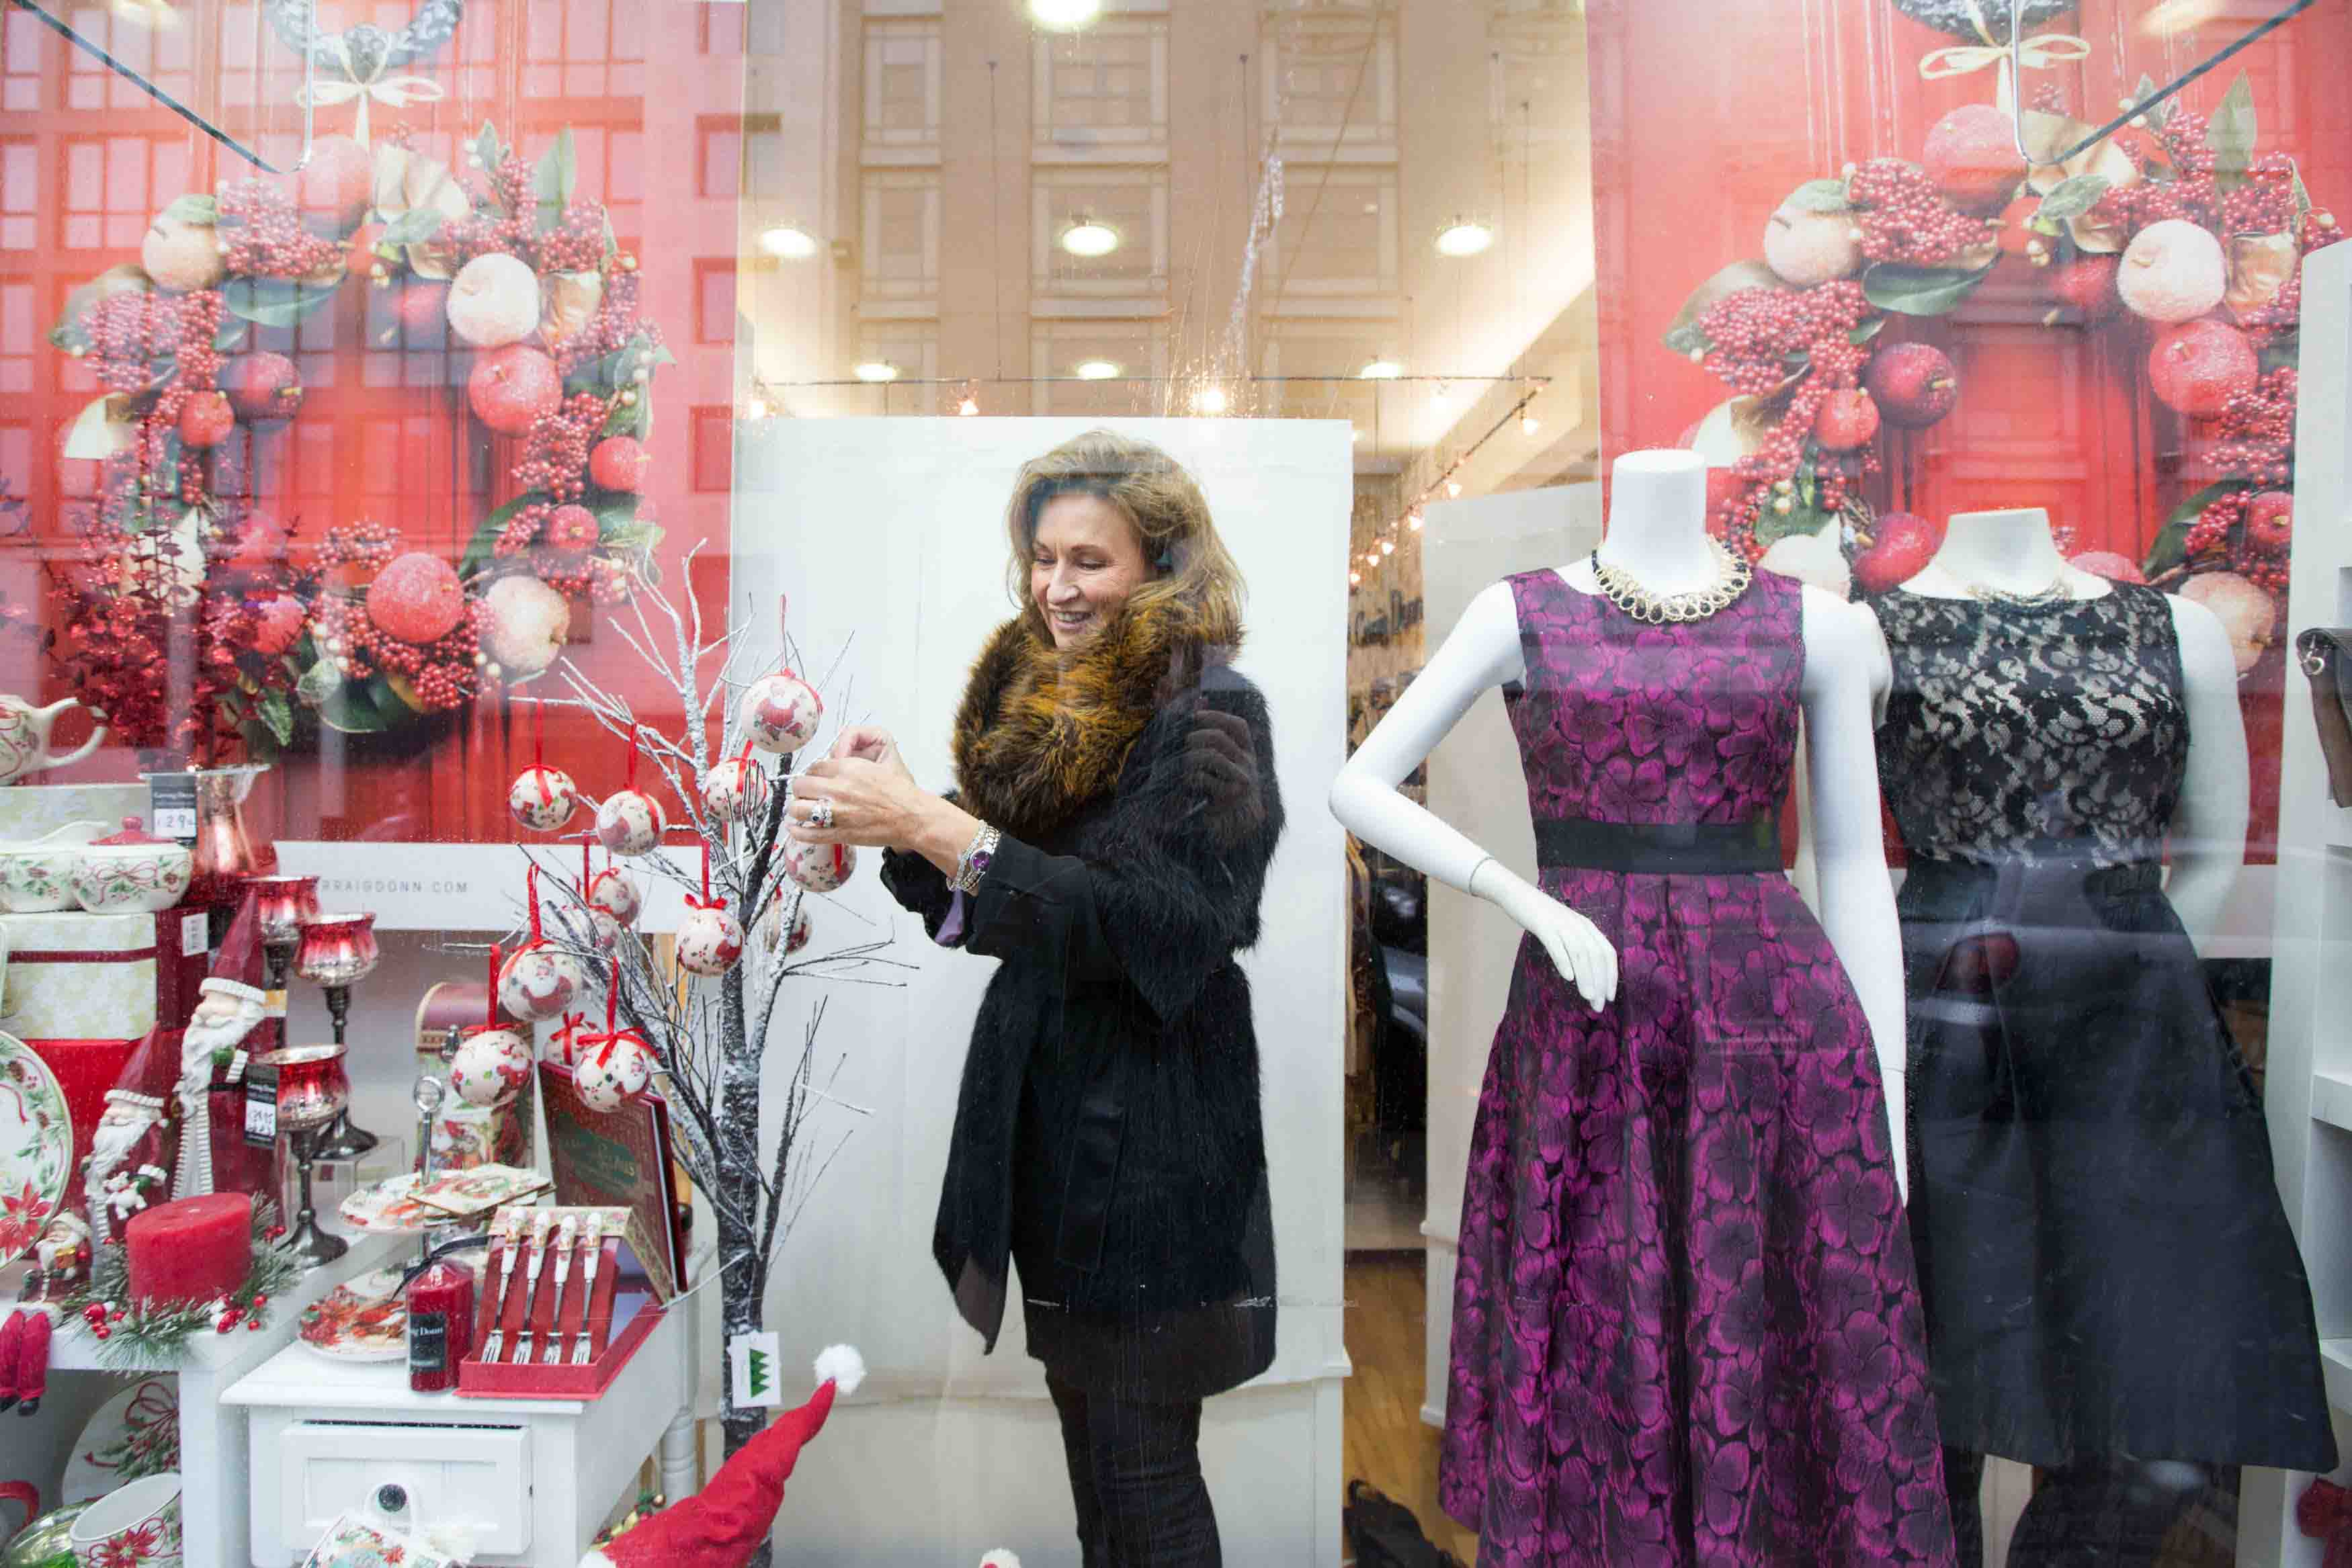 Limerick Festive Window Display for city fashion retailers